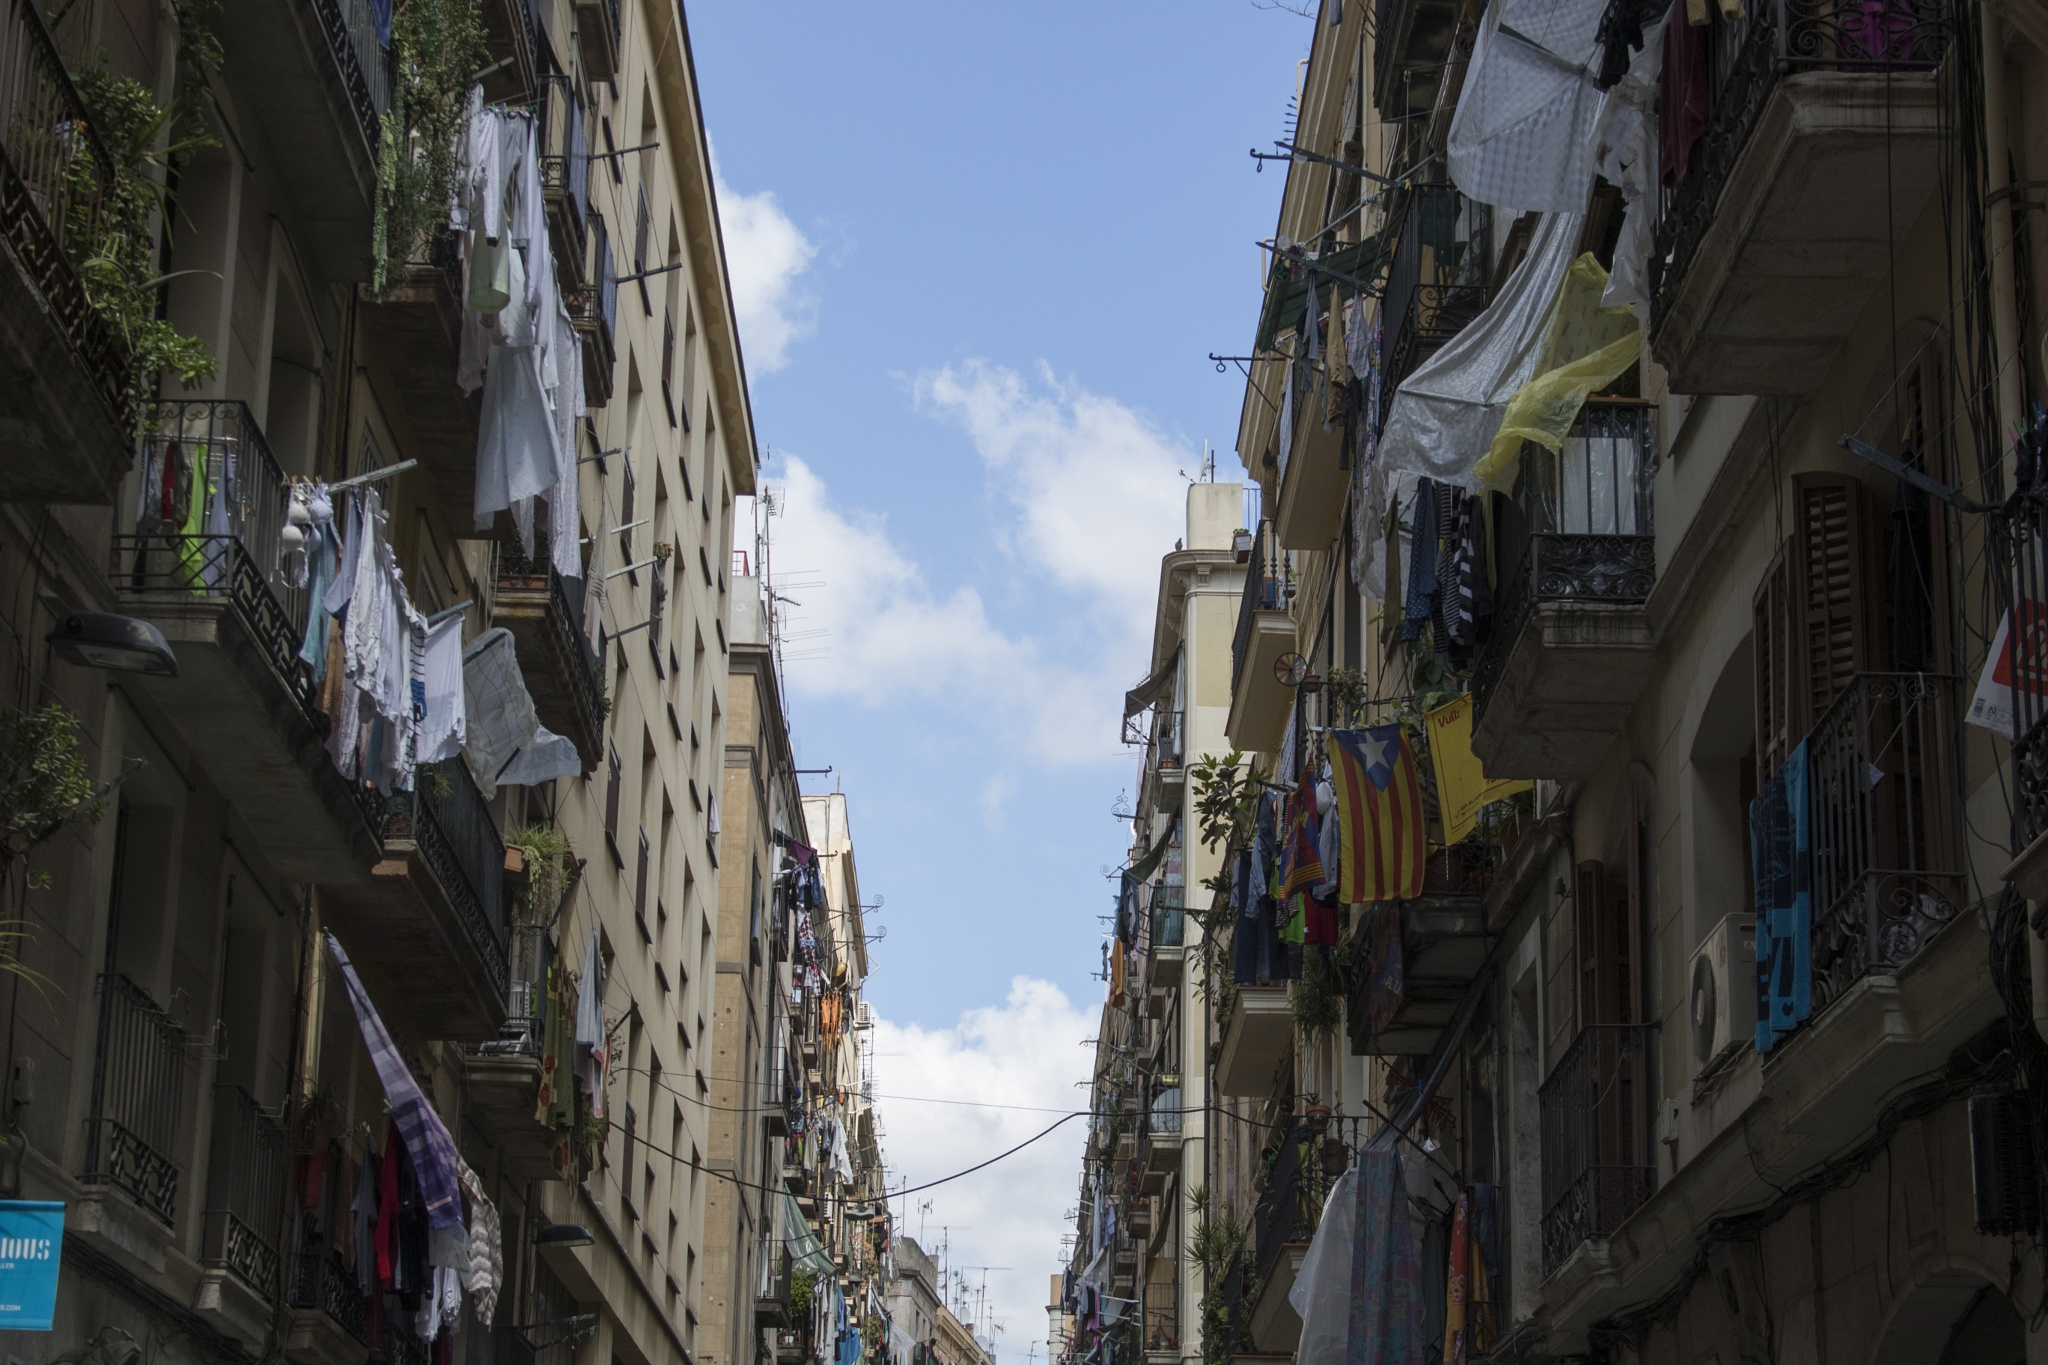 Barcelona at Her Best  by Tarah Sloan